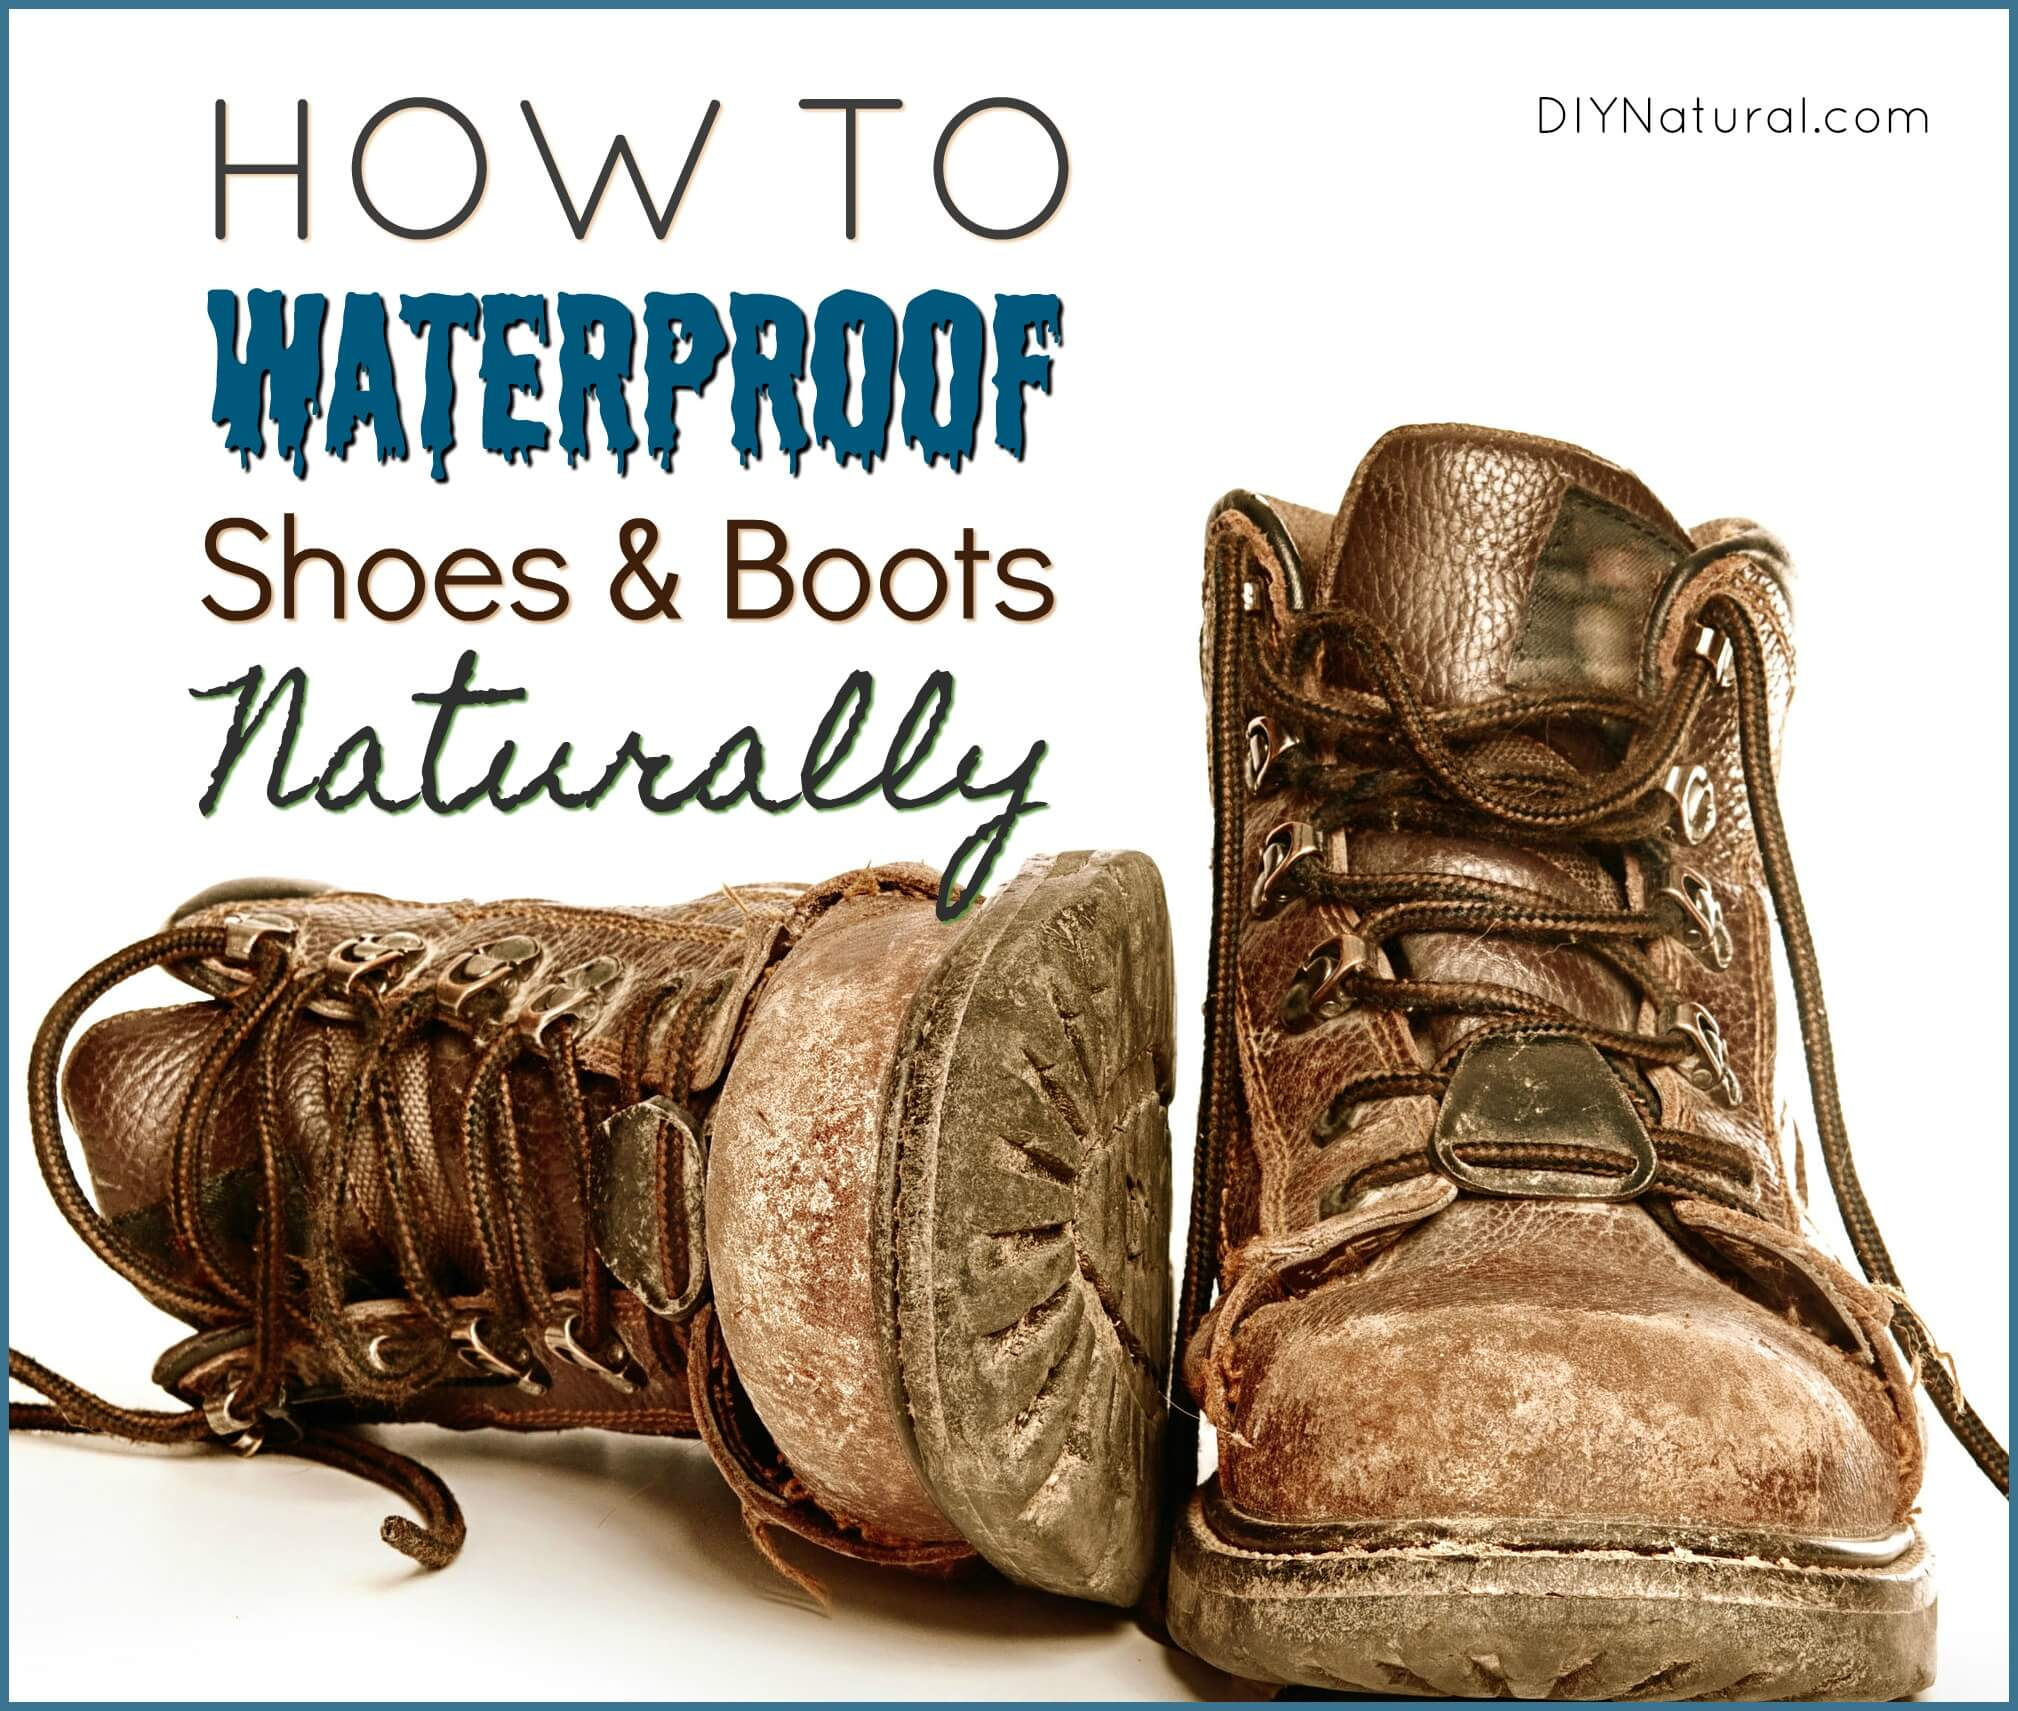 How to Waterproof Shoes: The Natural